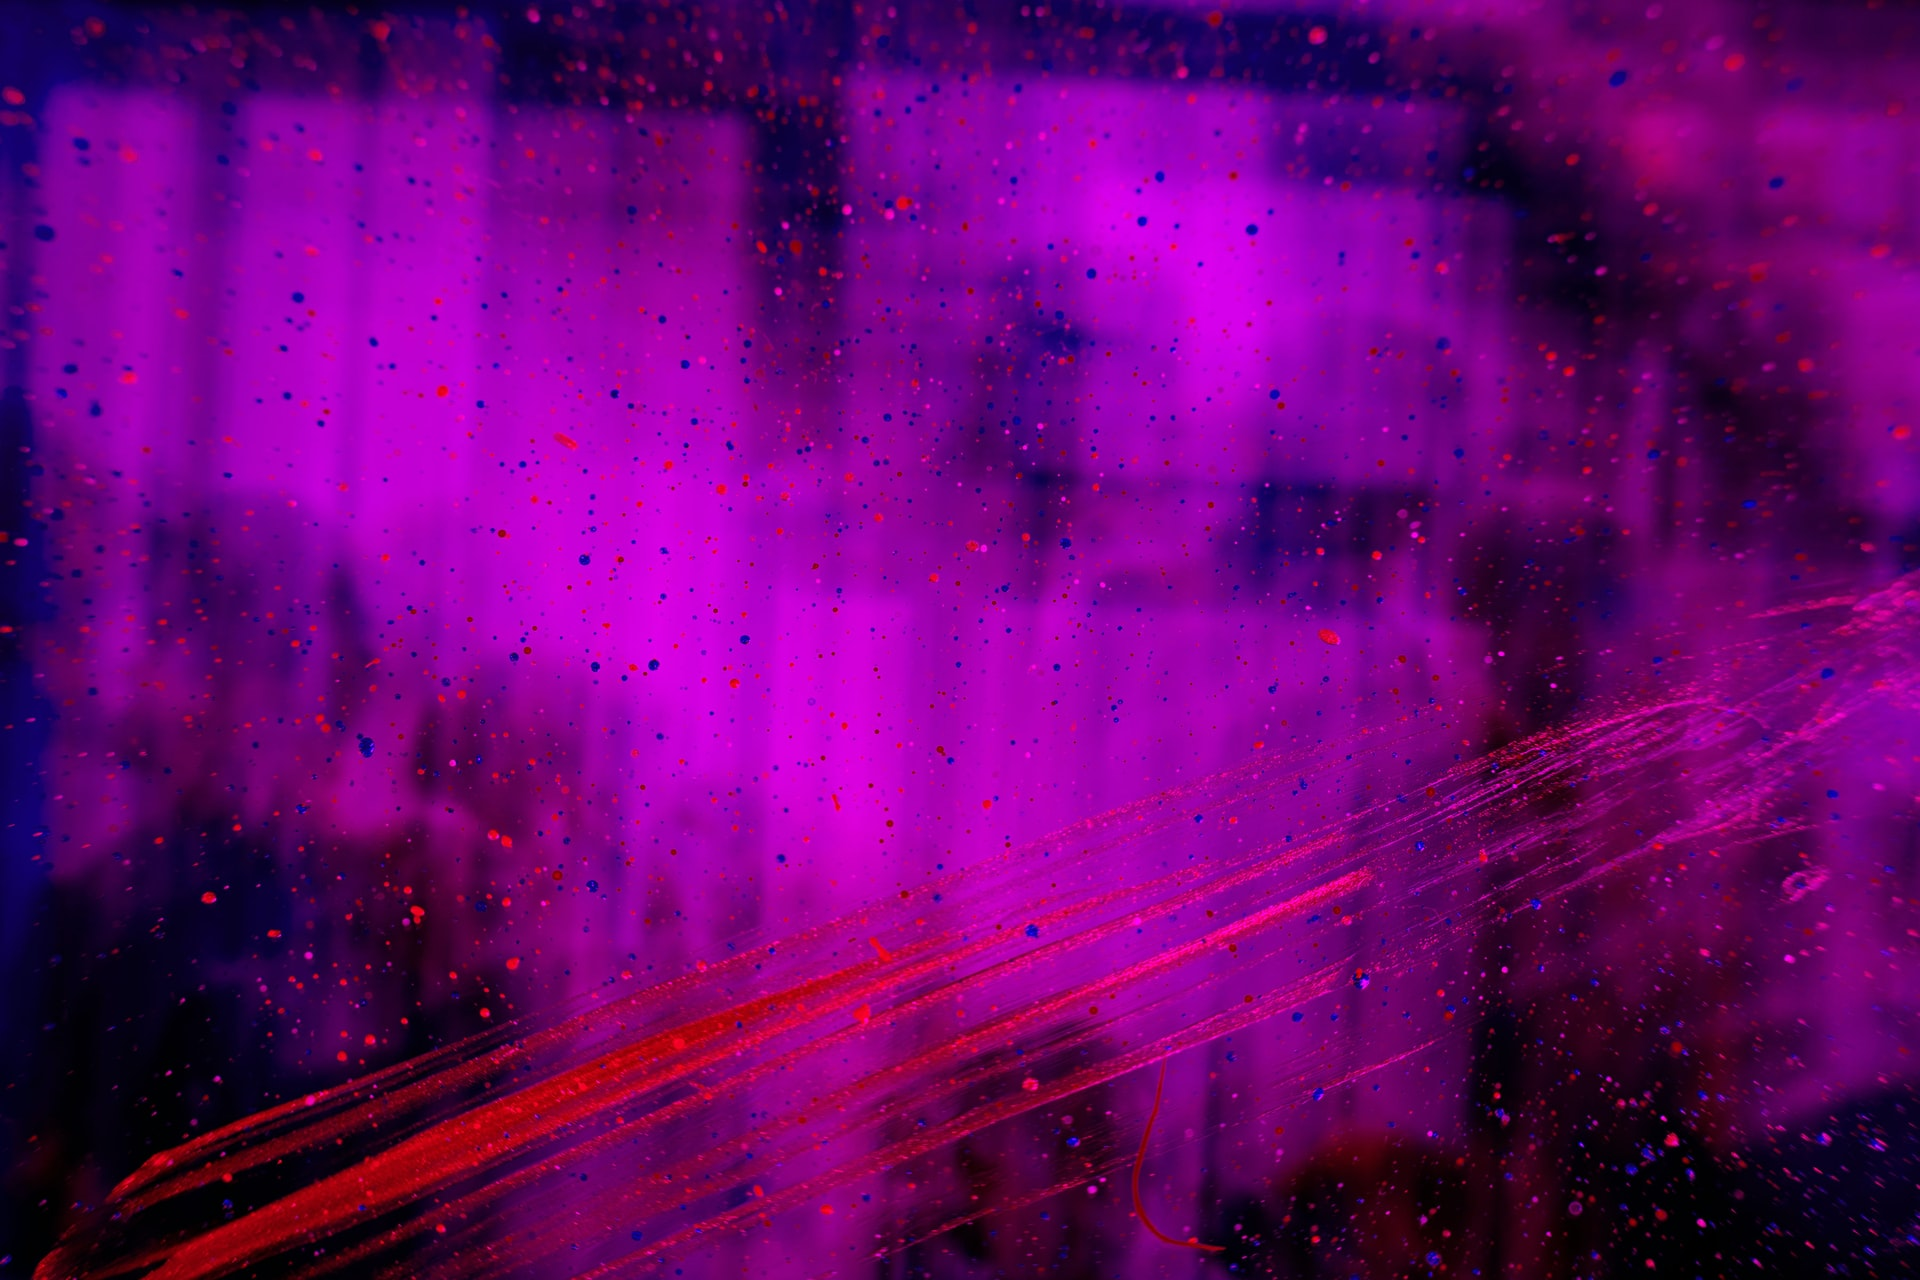 Abstract image of a purple blur.